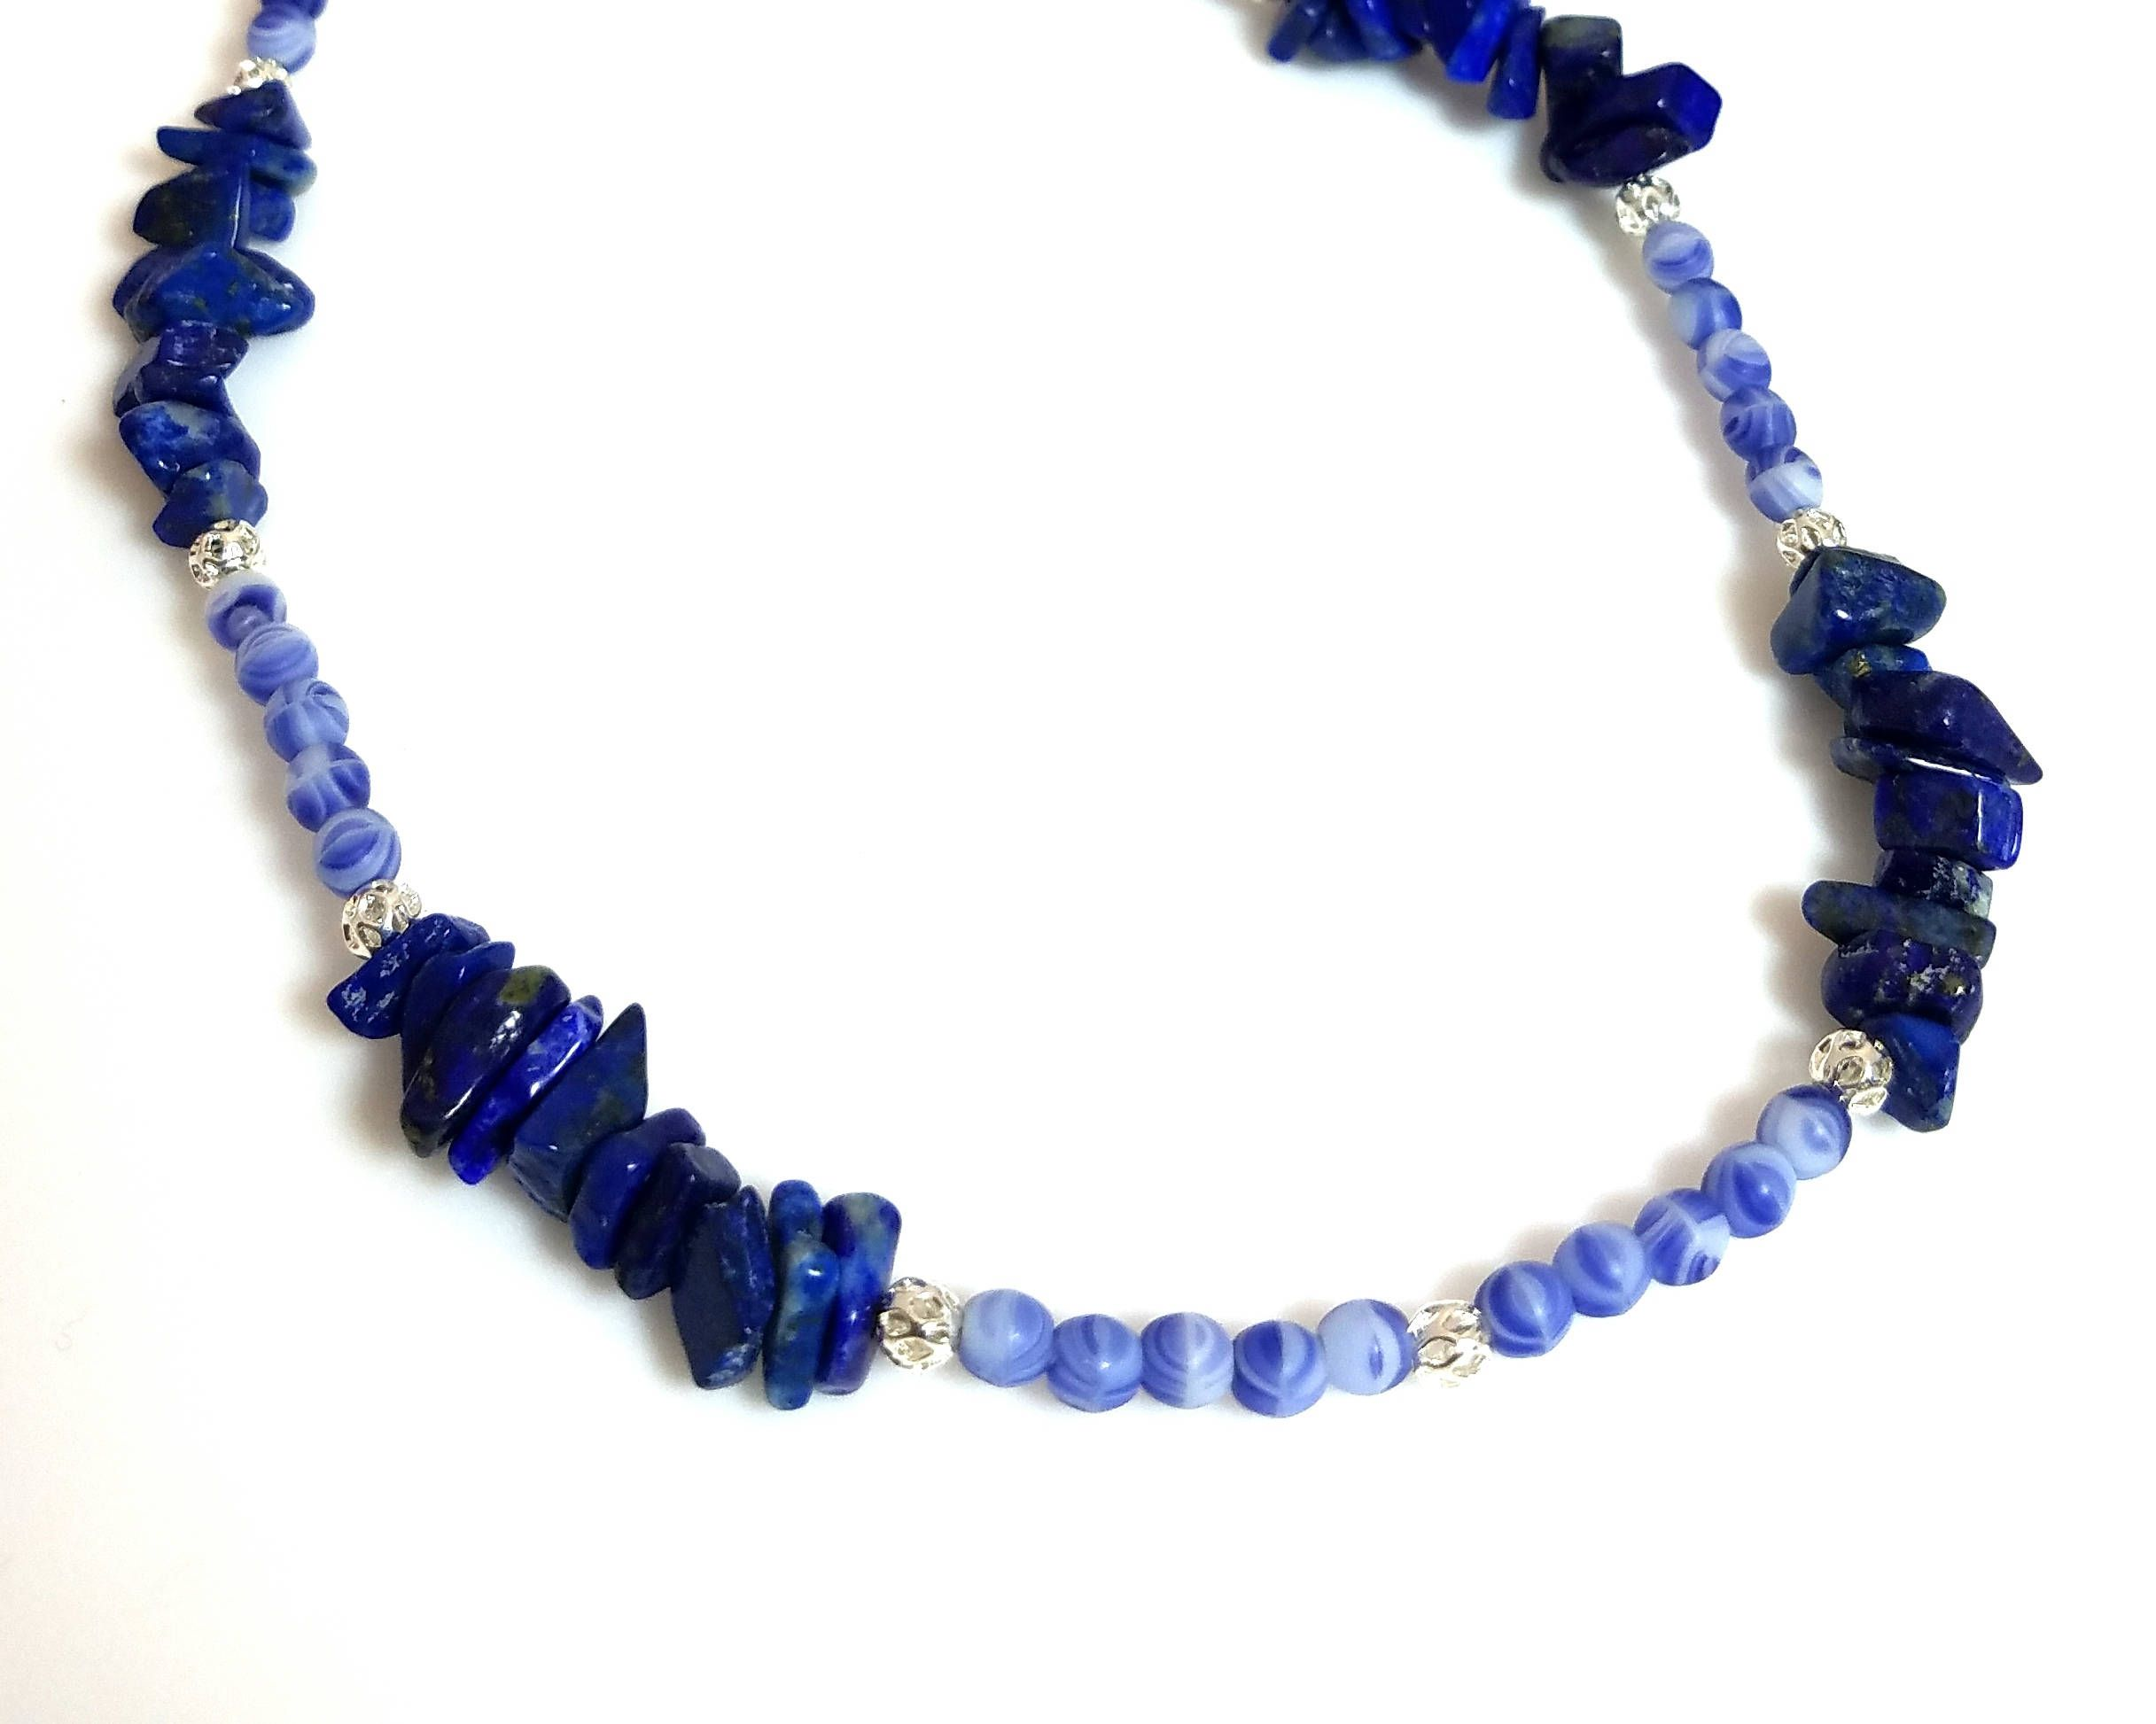 products green bead fair j trade strand necklace handmade blue lucias imports and